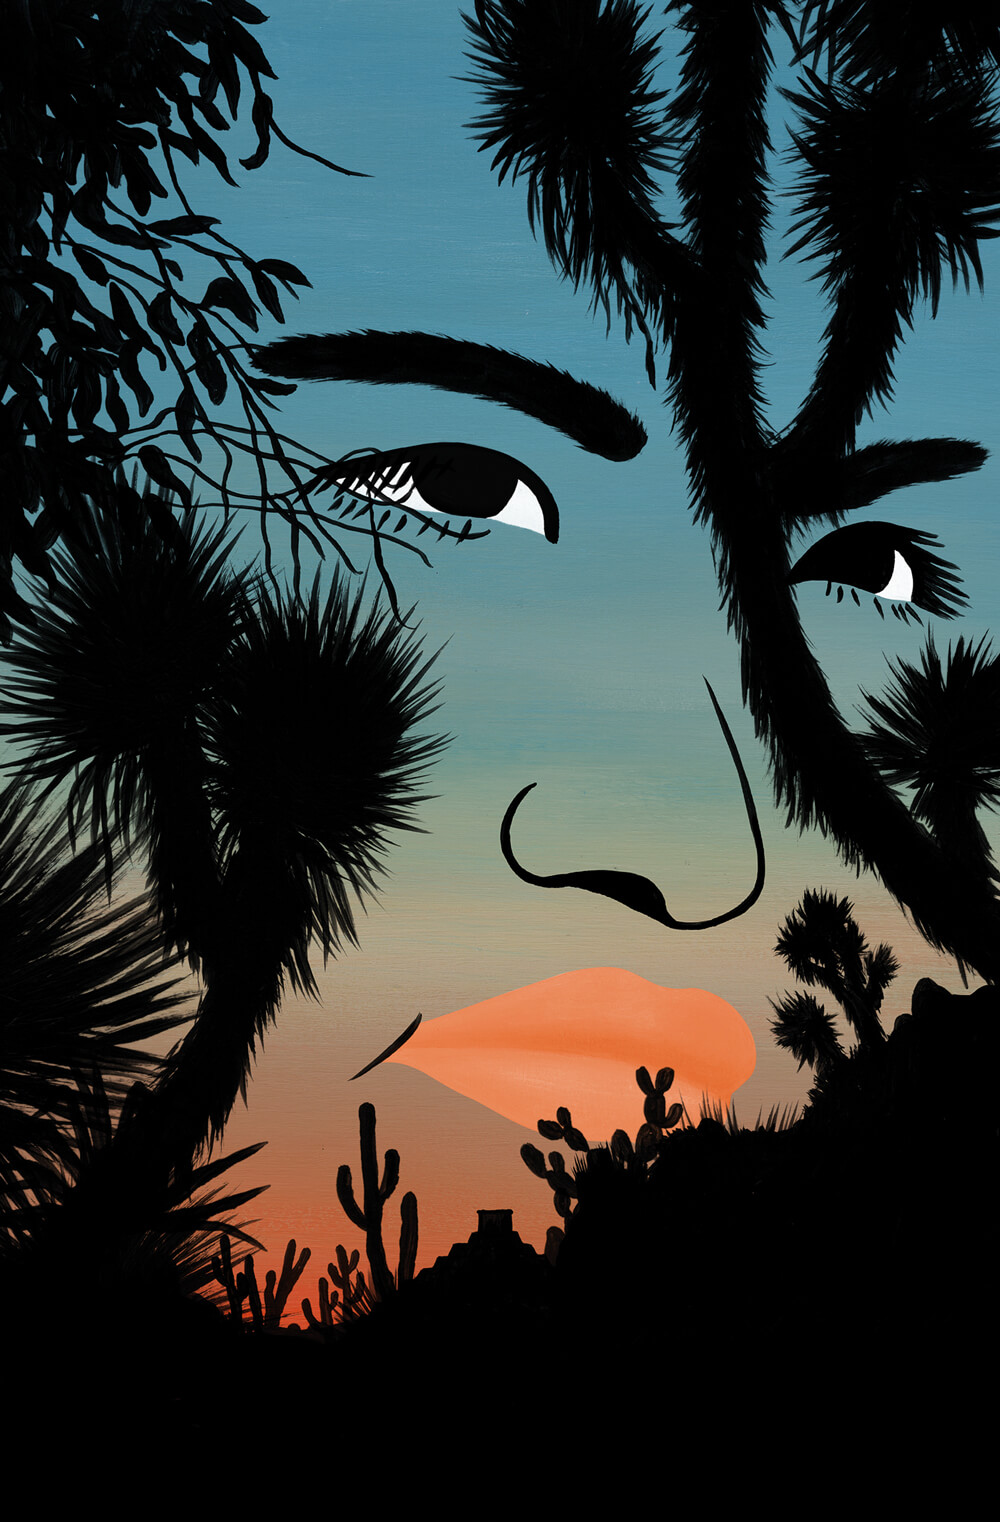 A determined face is formed with the silhouettes of desert plant life against the twilight of the sky.